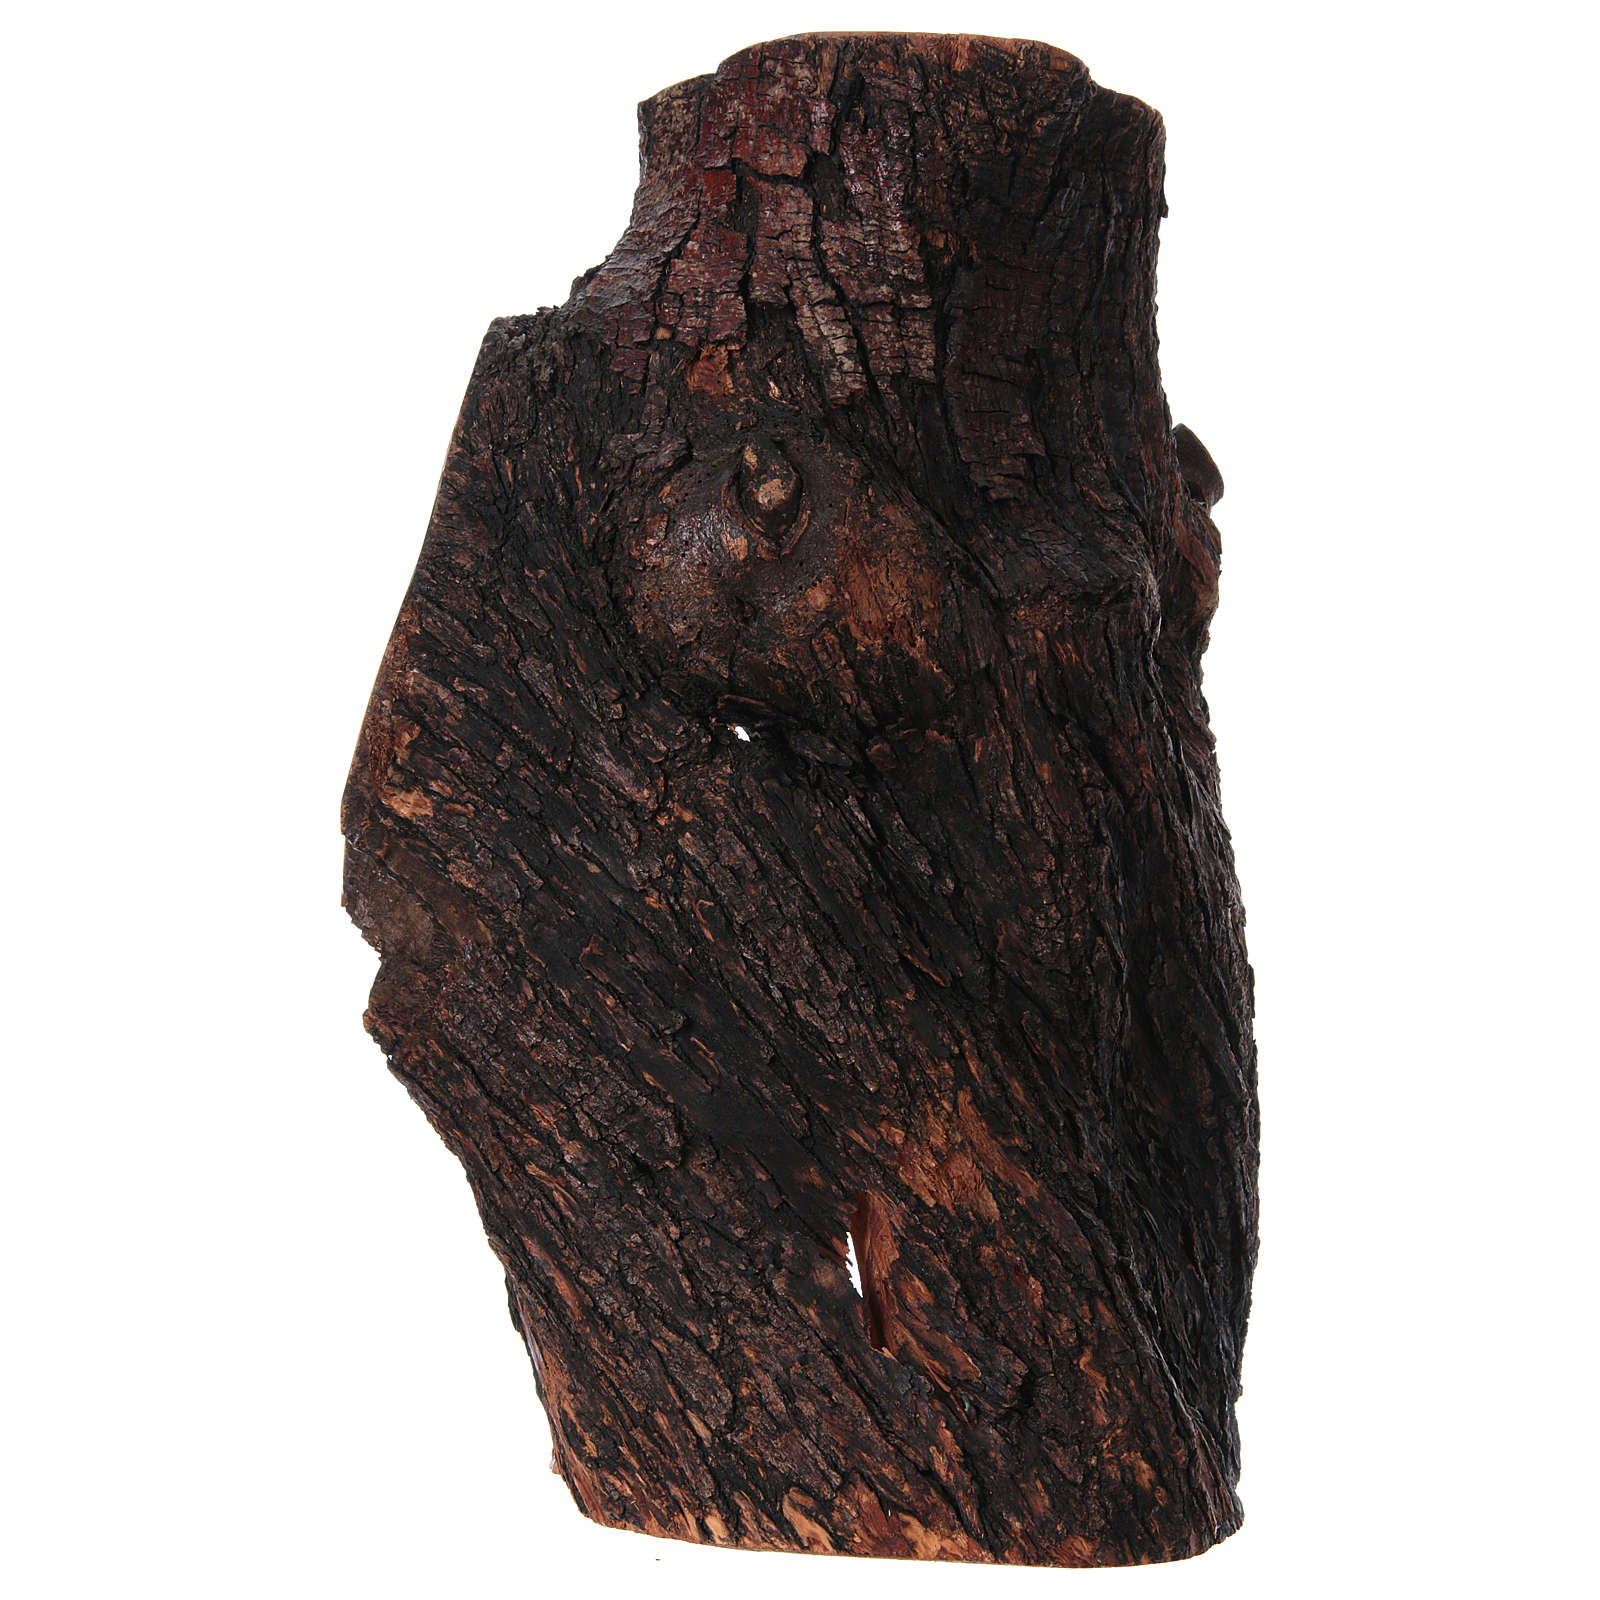 Entire Nativity Olive wood from Bethlehem 21 cm in natural cave 45x30x30 cm 4